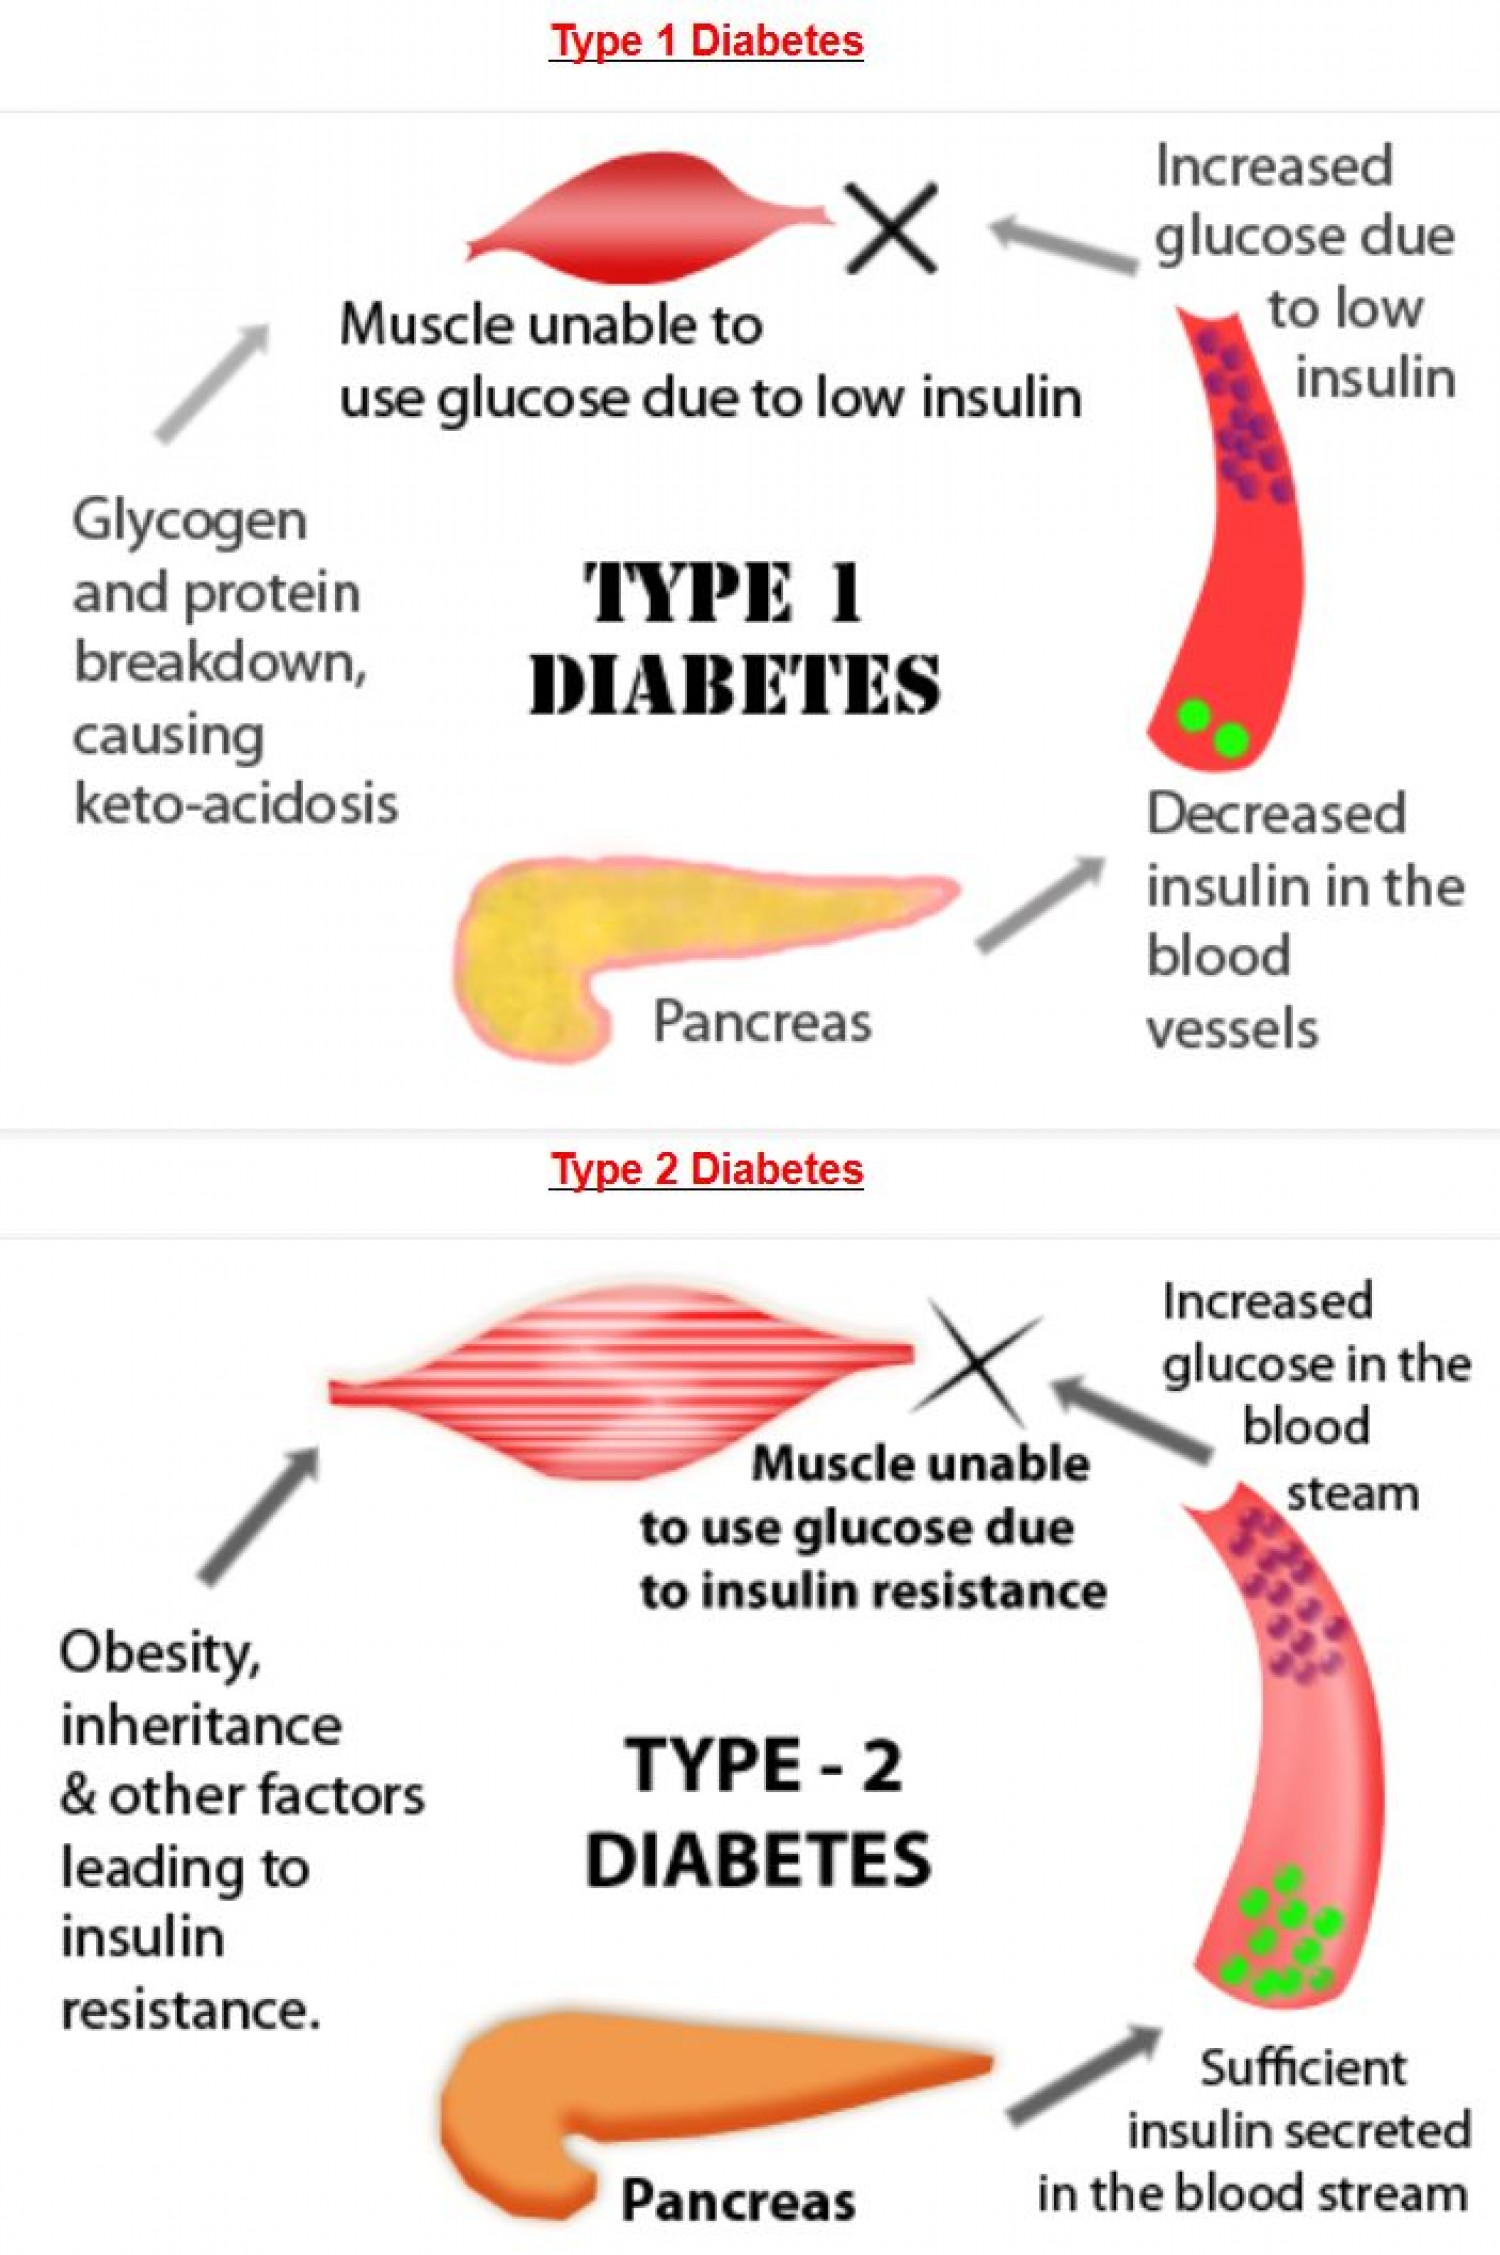 diabetes and health Diabetes factsheet from who providing key facts and information on types of diabetes, symptoms, common consequences, economic impact, diagnosis and treatment, who response updated november 2014.